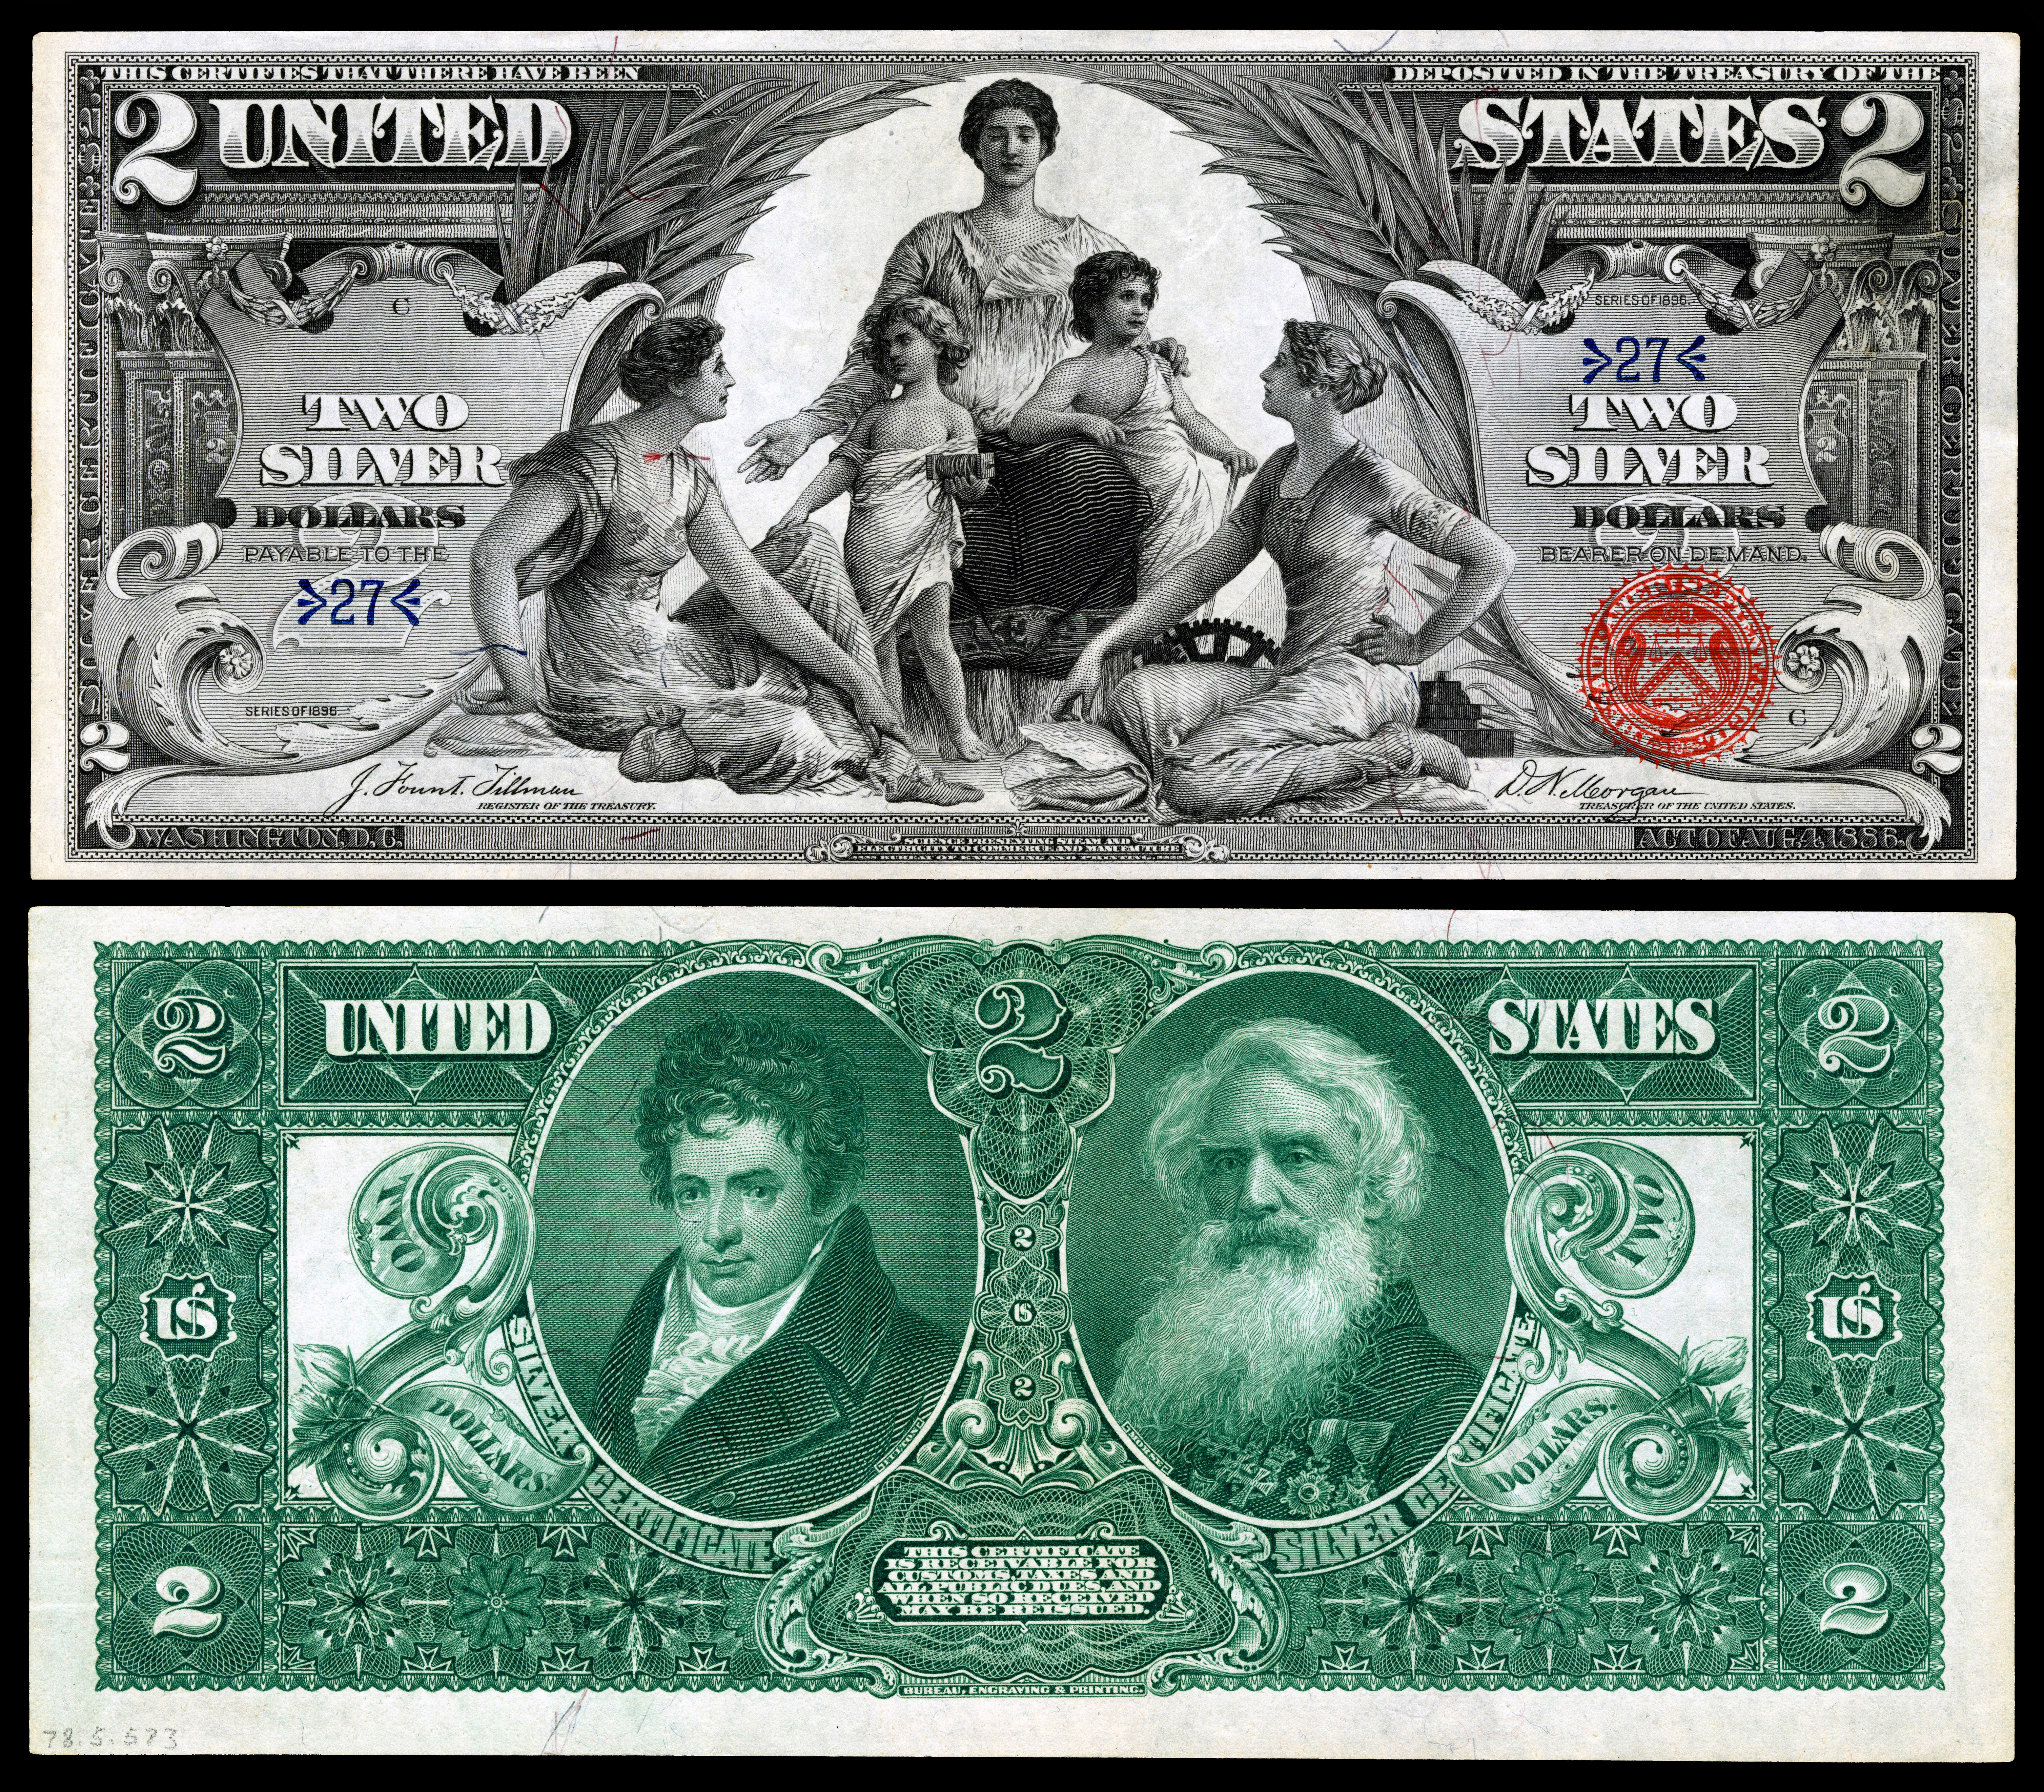 Robert Fulton (with Samuel F. B. Morse) depicted on the reverse of the 1896 $2 Silver Certificate from the United States Treasury